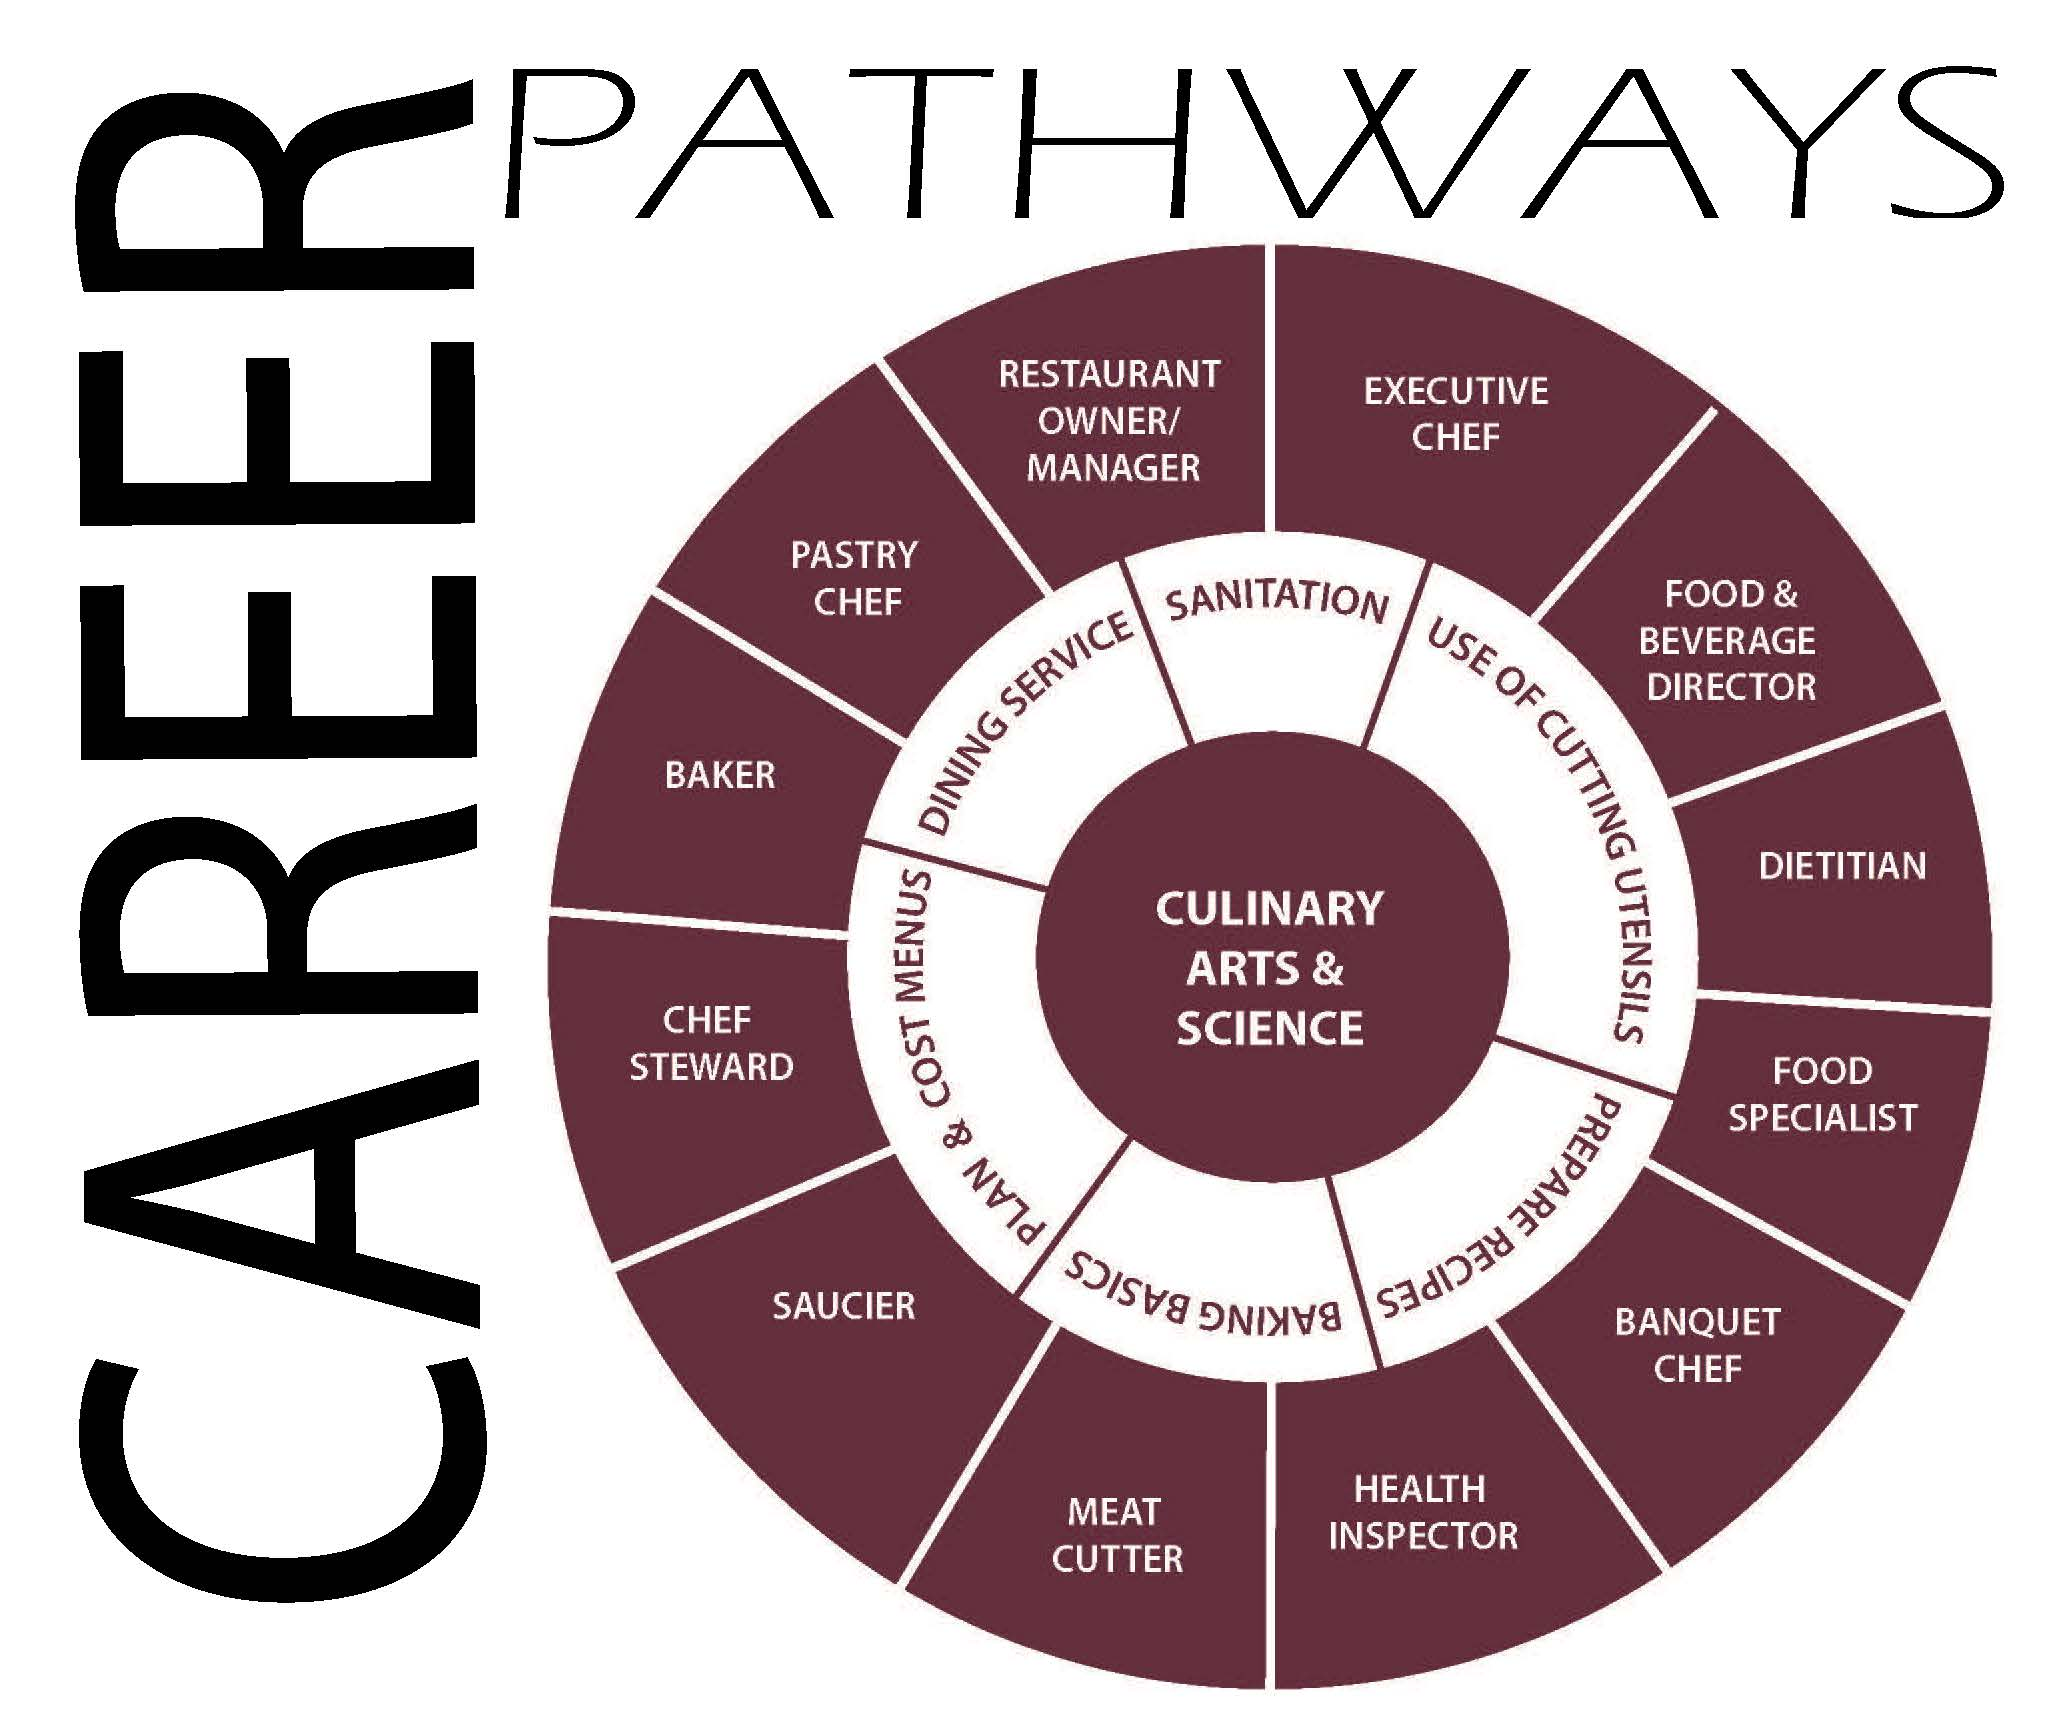 Career Pathway Wheel for Culinary ARts & Science